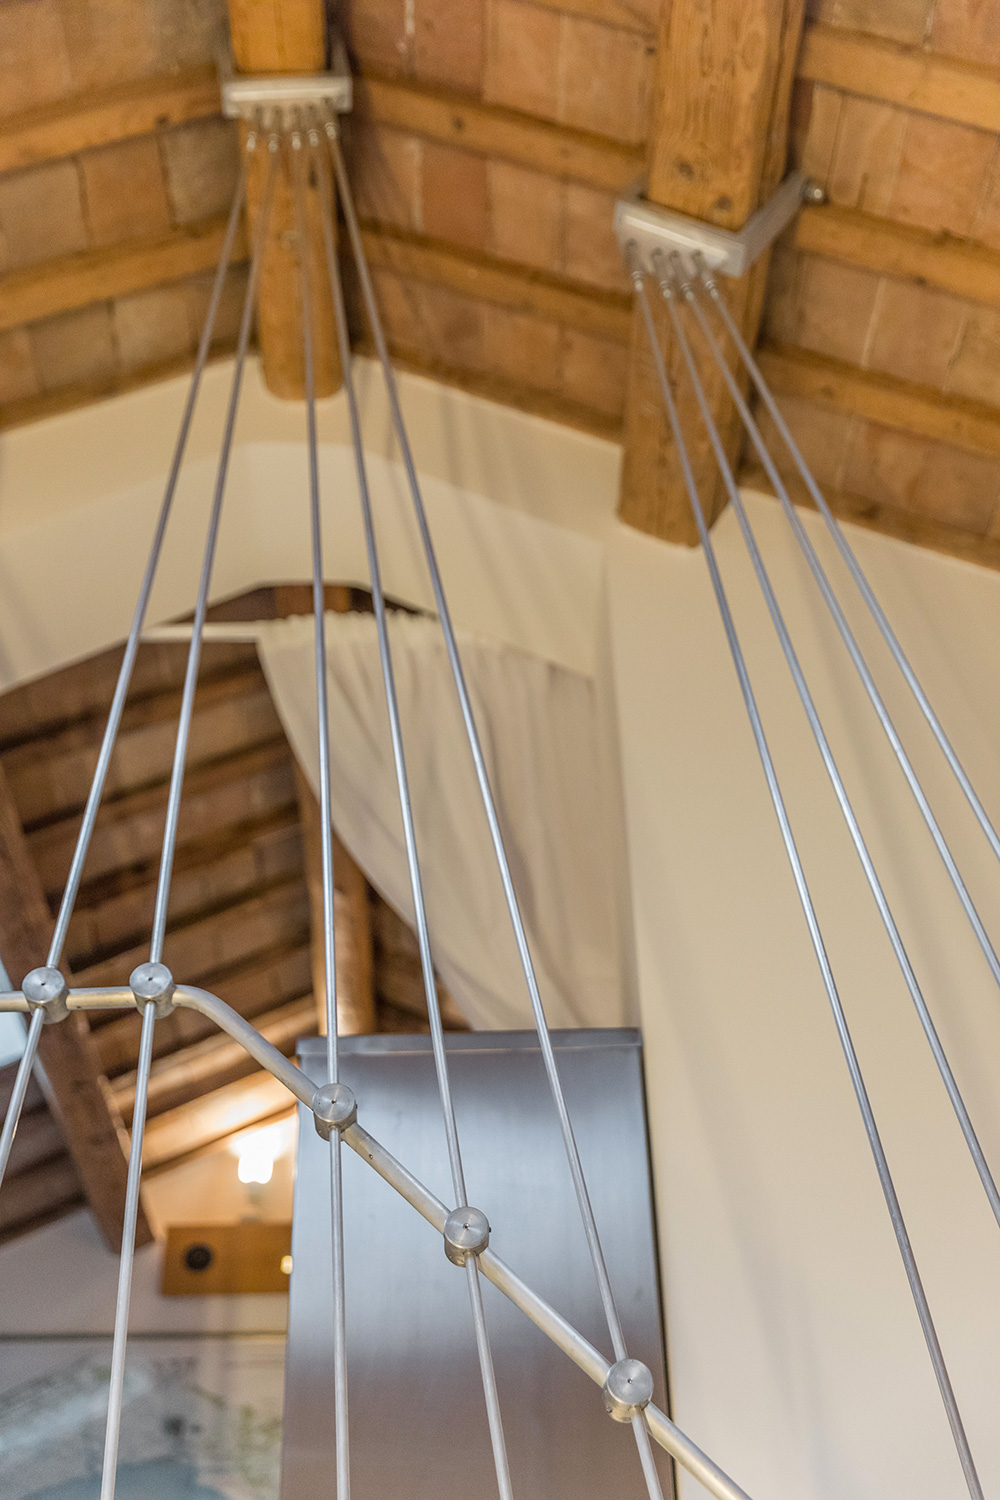 detail of the metal staicase structure in the living room